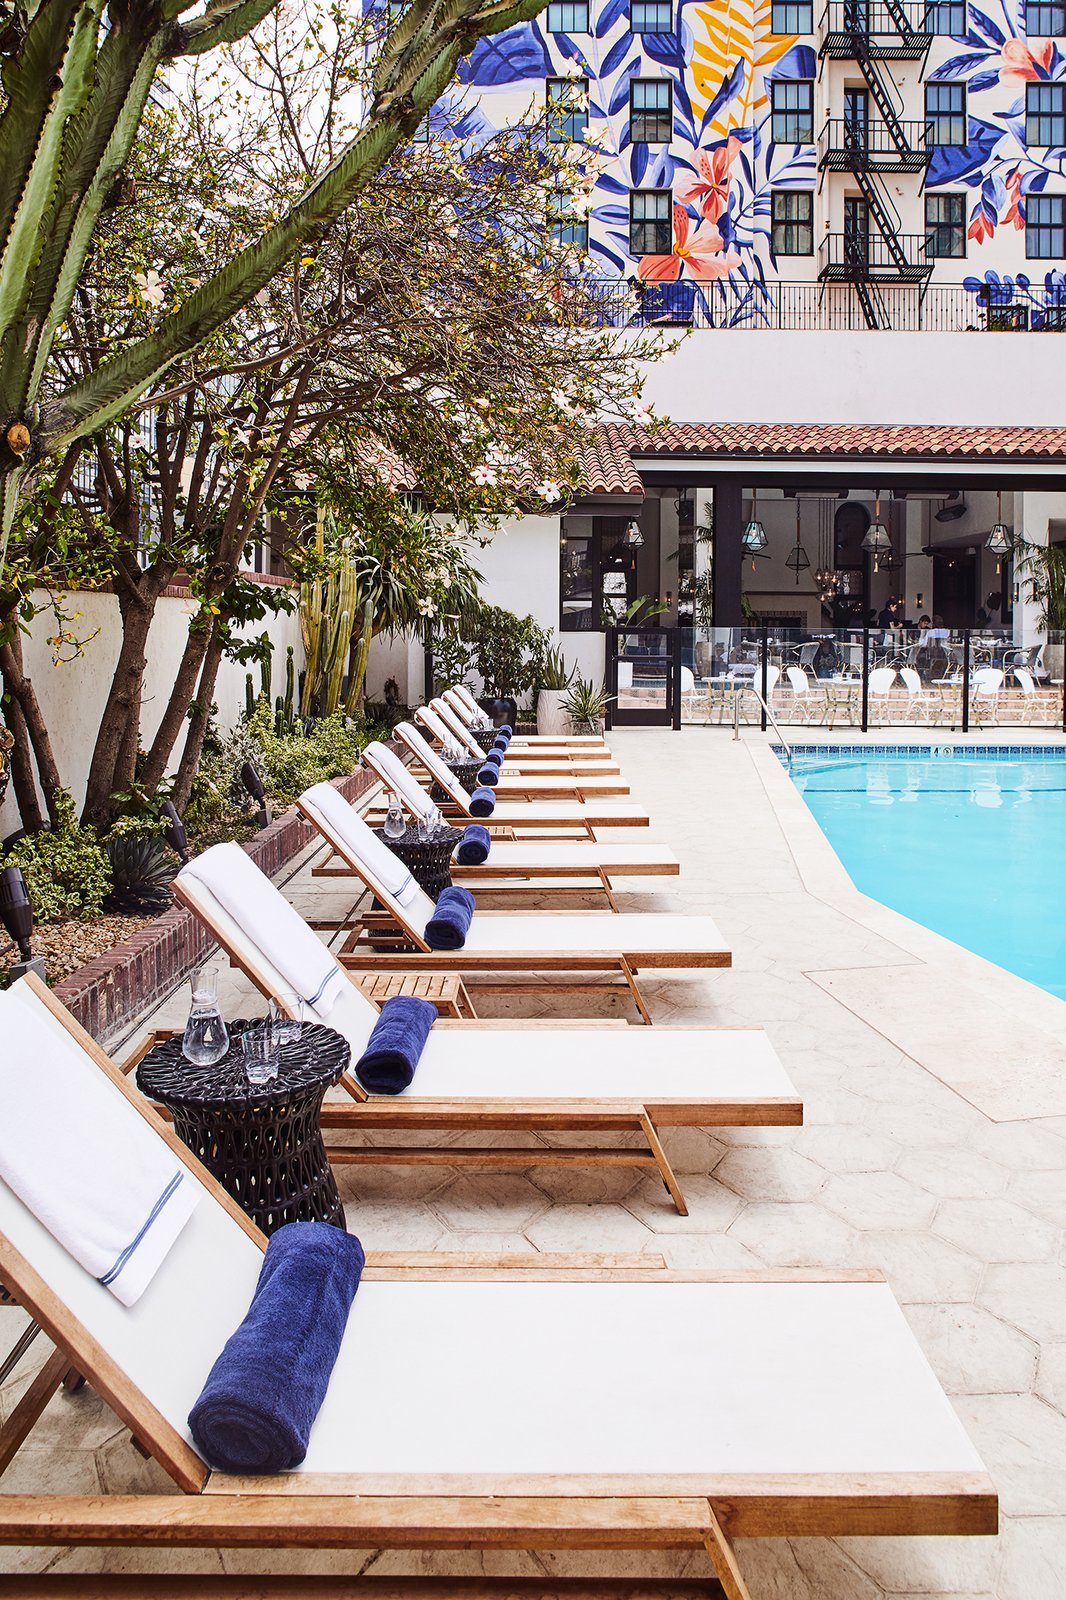 Poolside daybeds at Hotel Figueroa